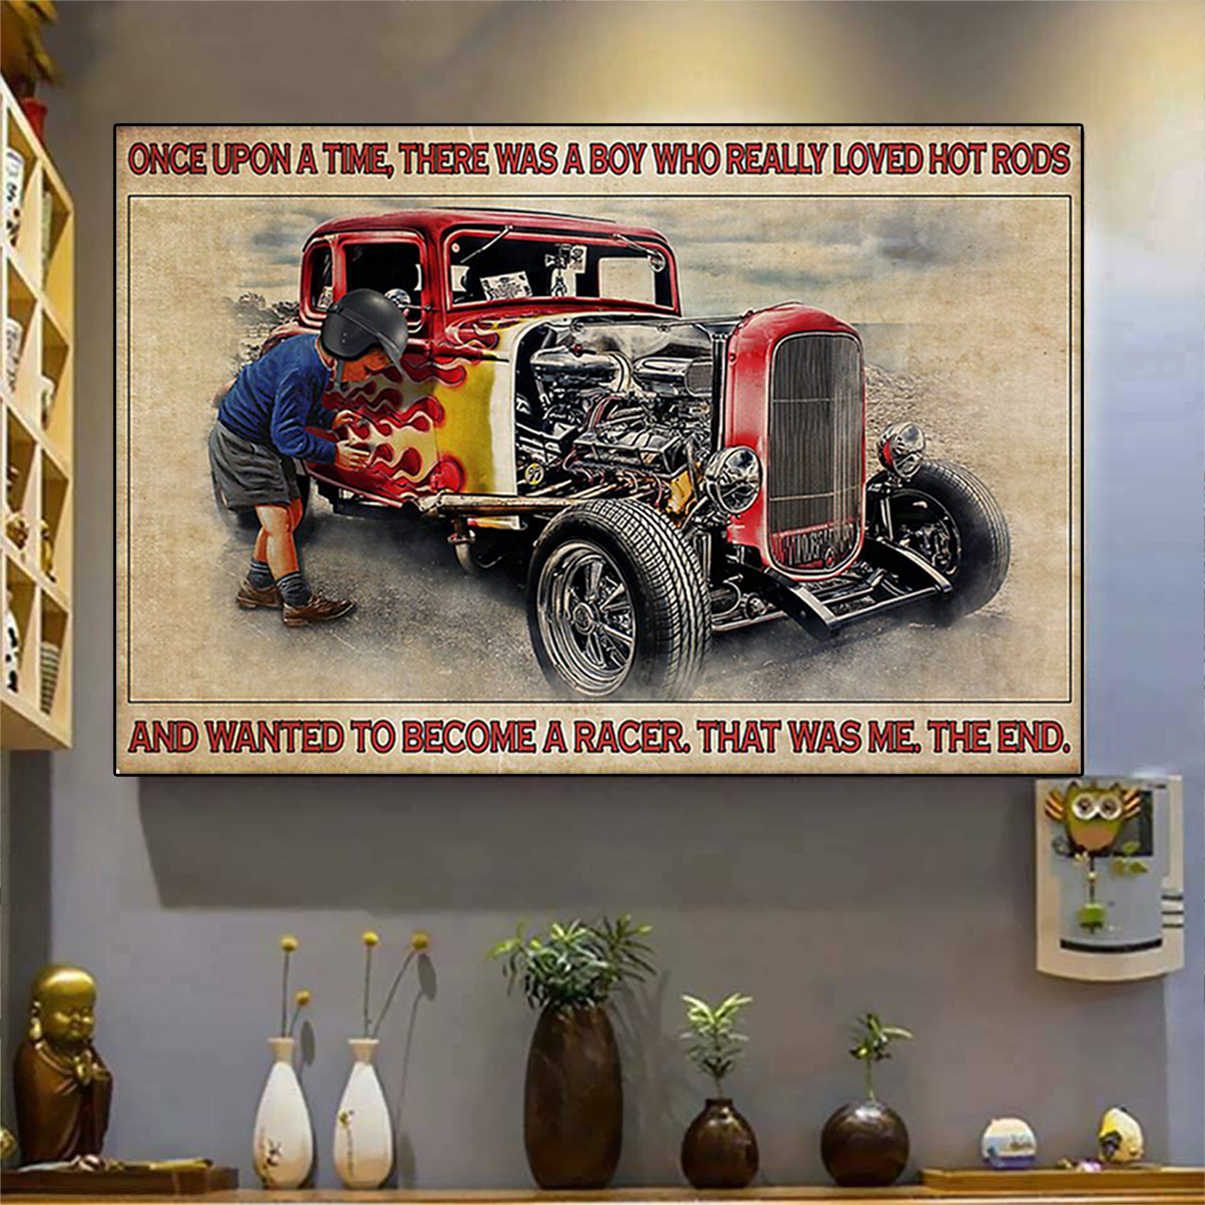 Once upon a time there was a boy who really loved hot rods poster A3